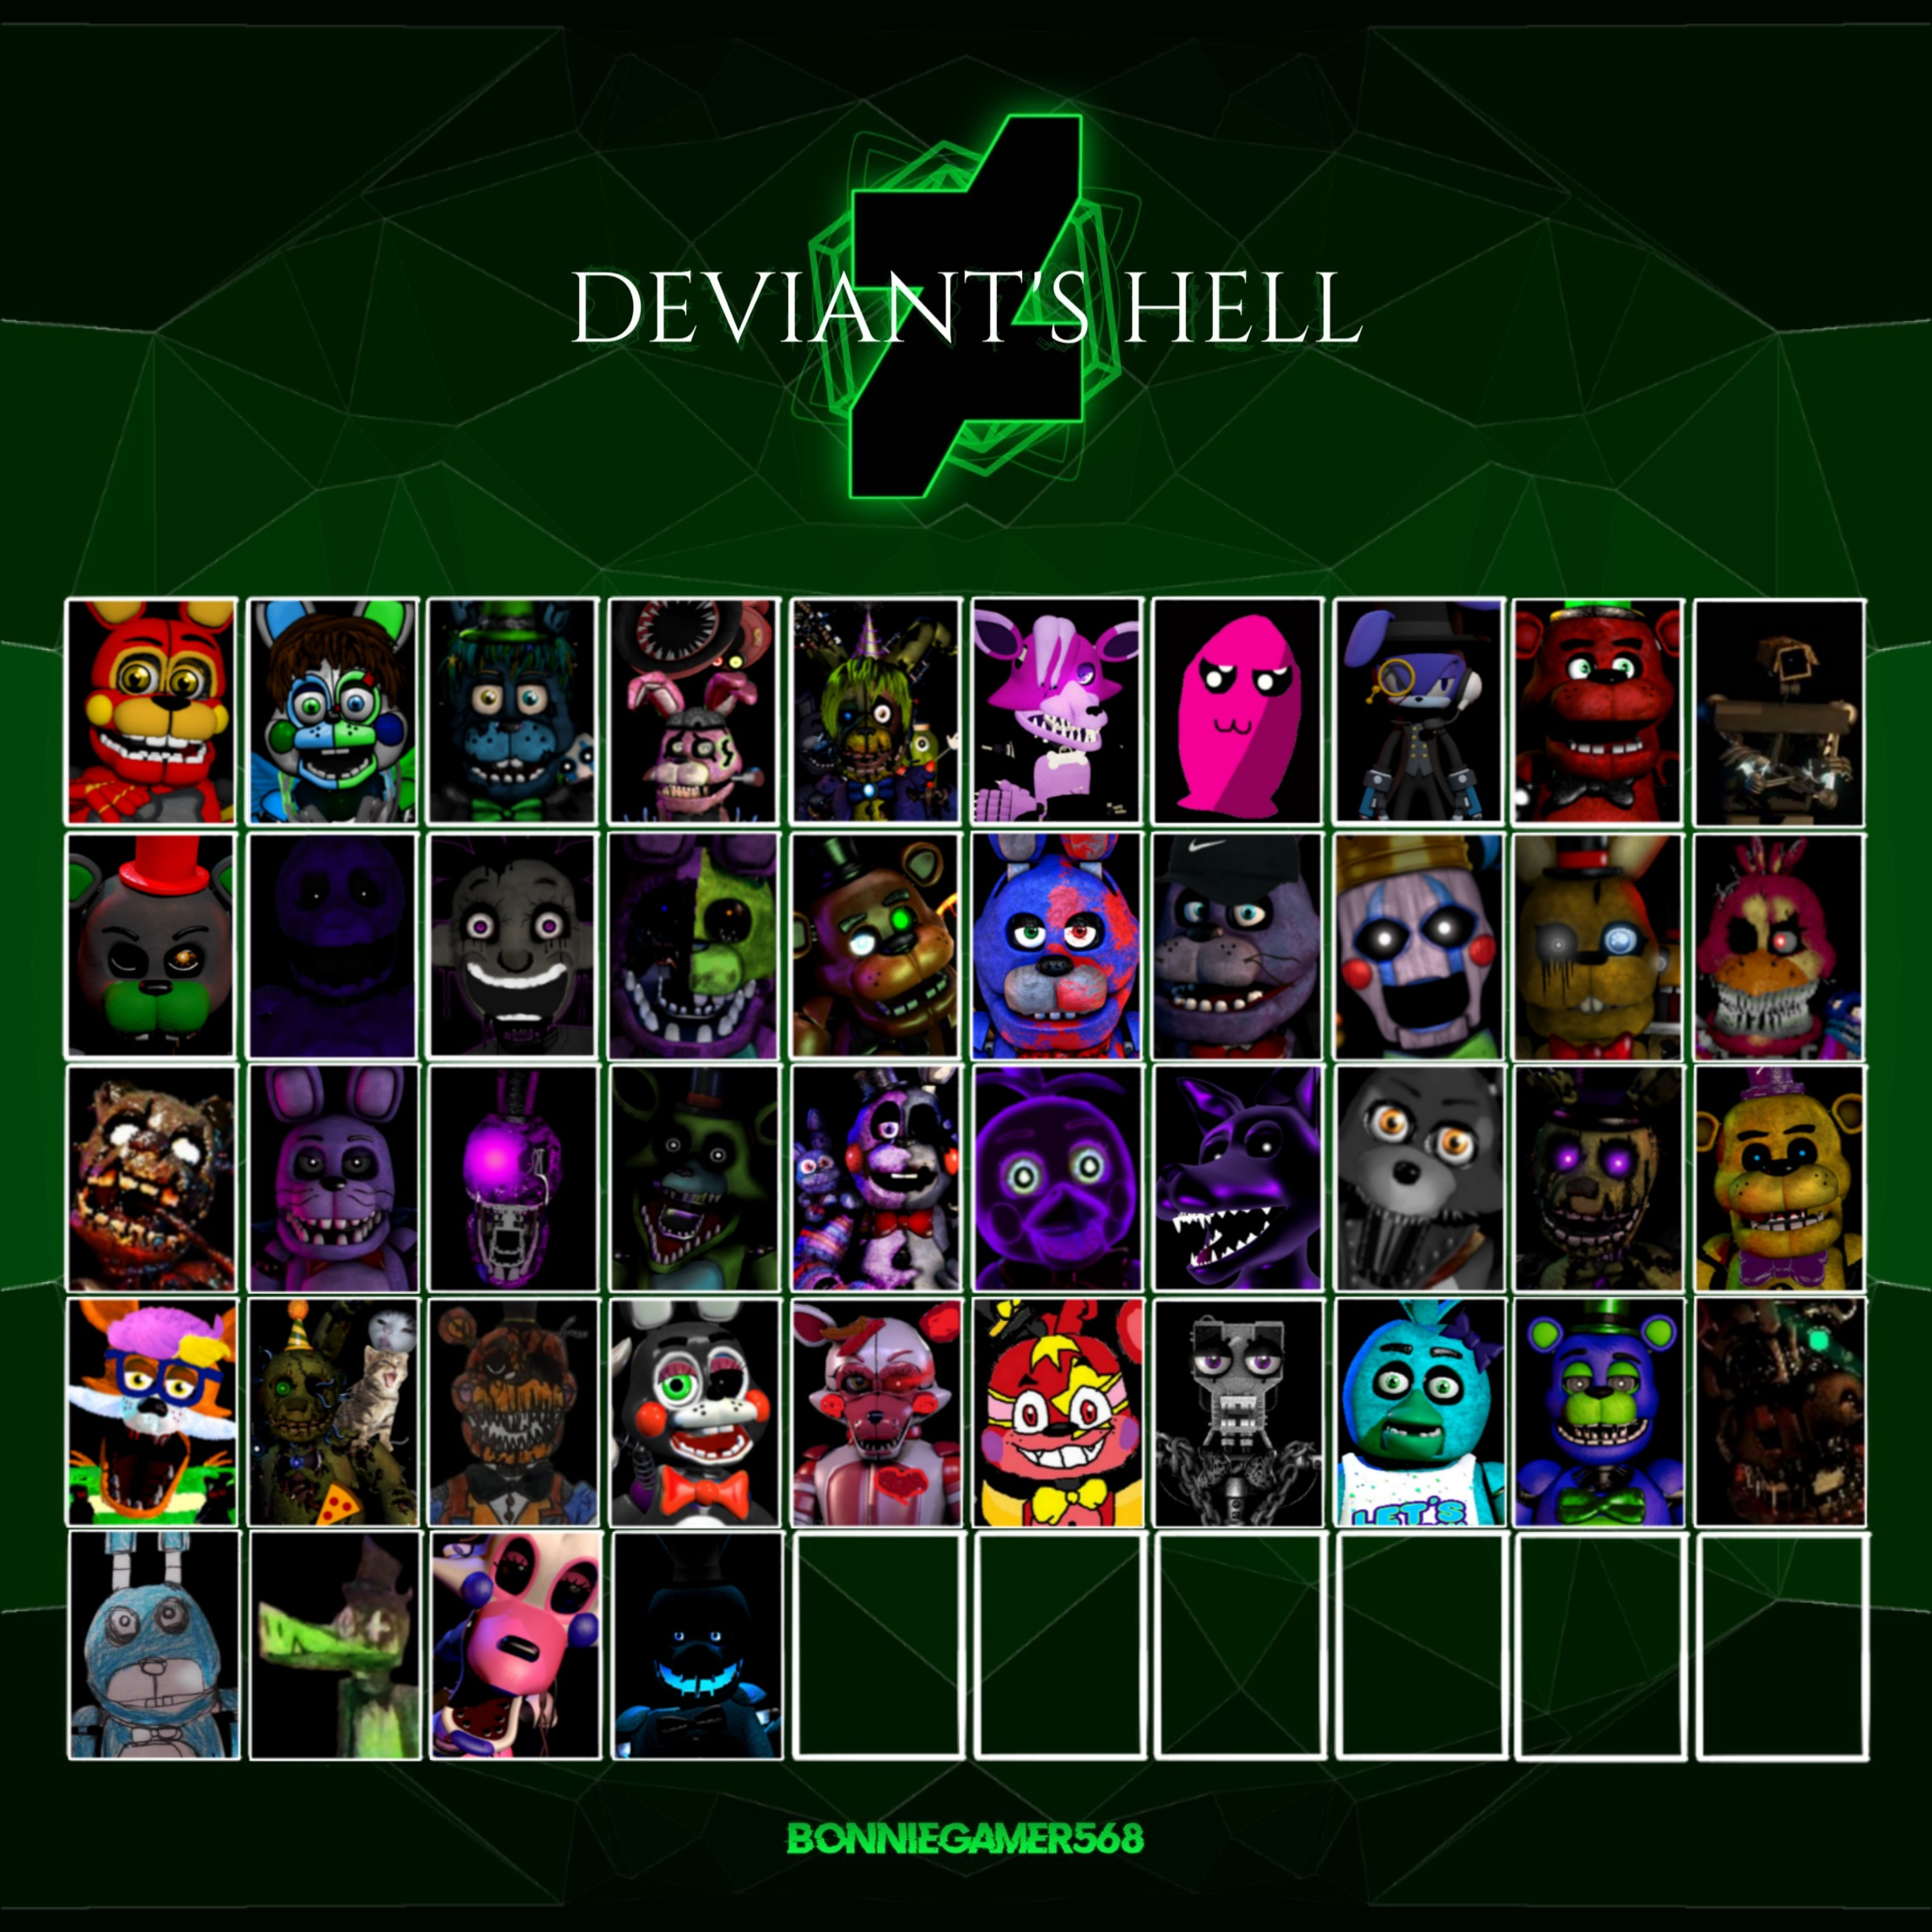 DEVIANT'S HELL (44/50) [6 Left!]